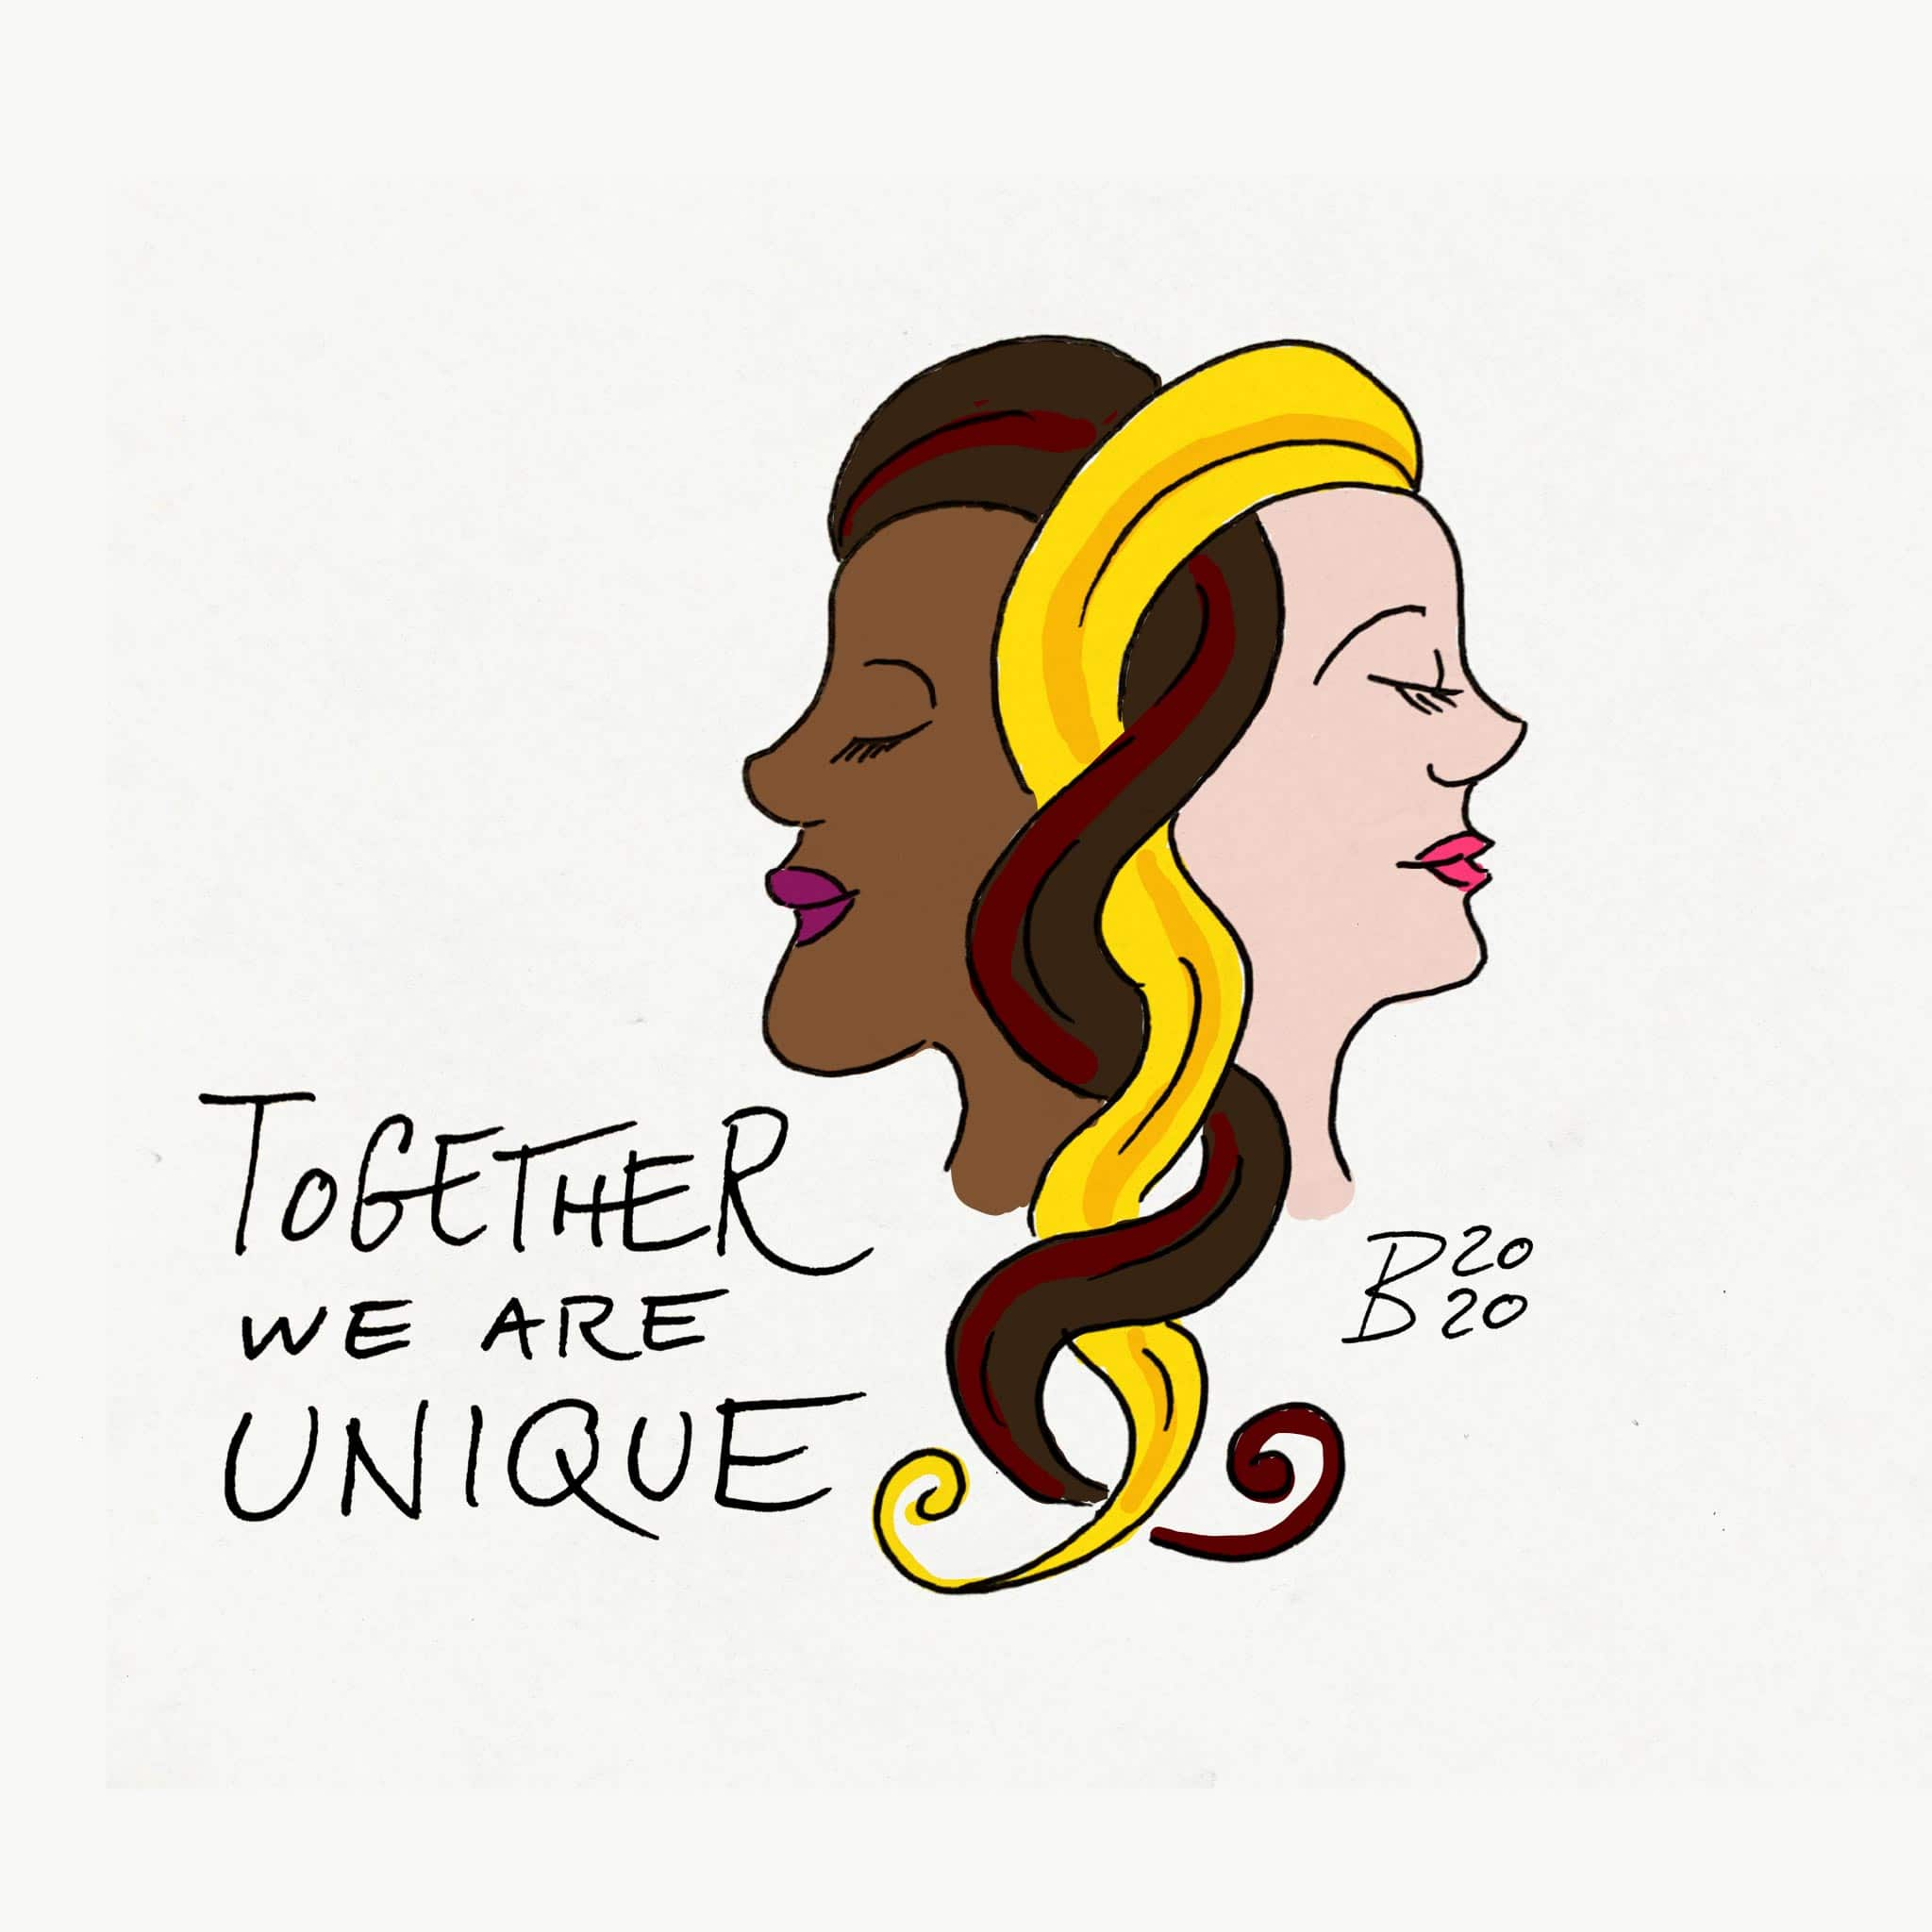 Together We Are Unique